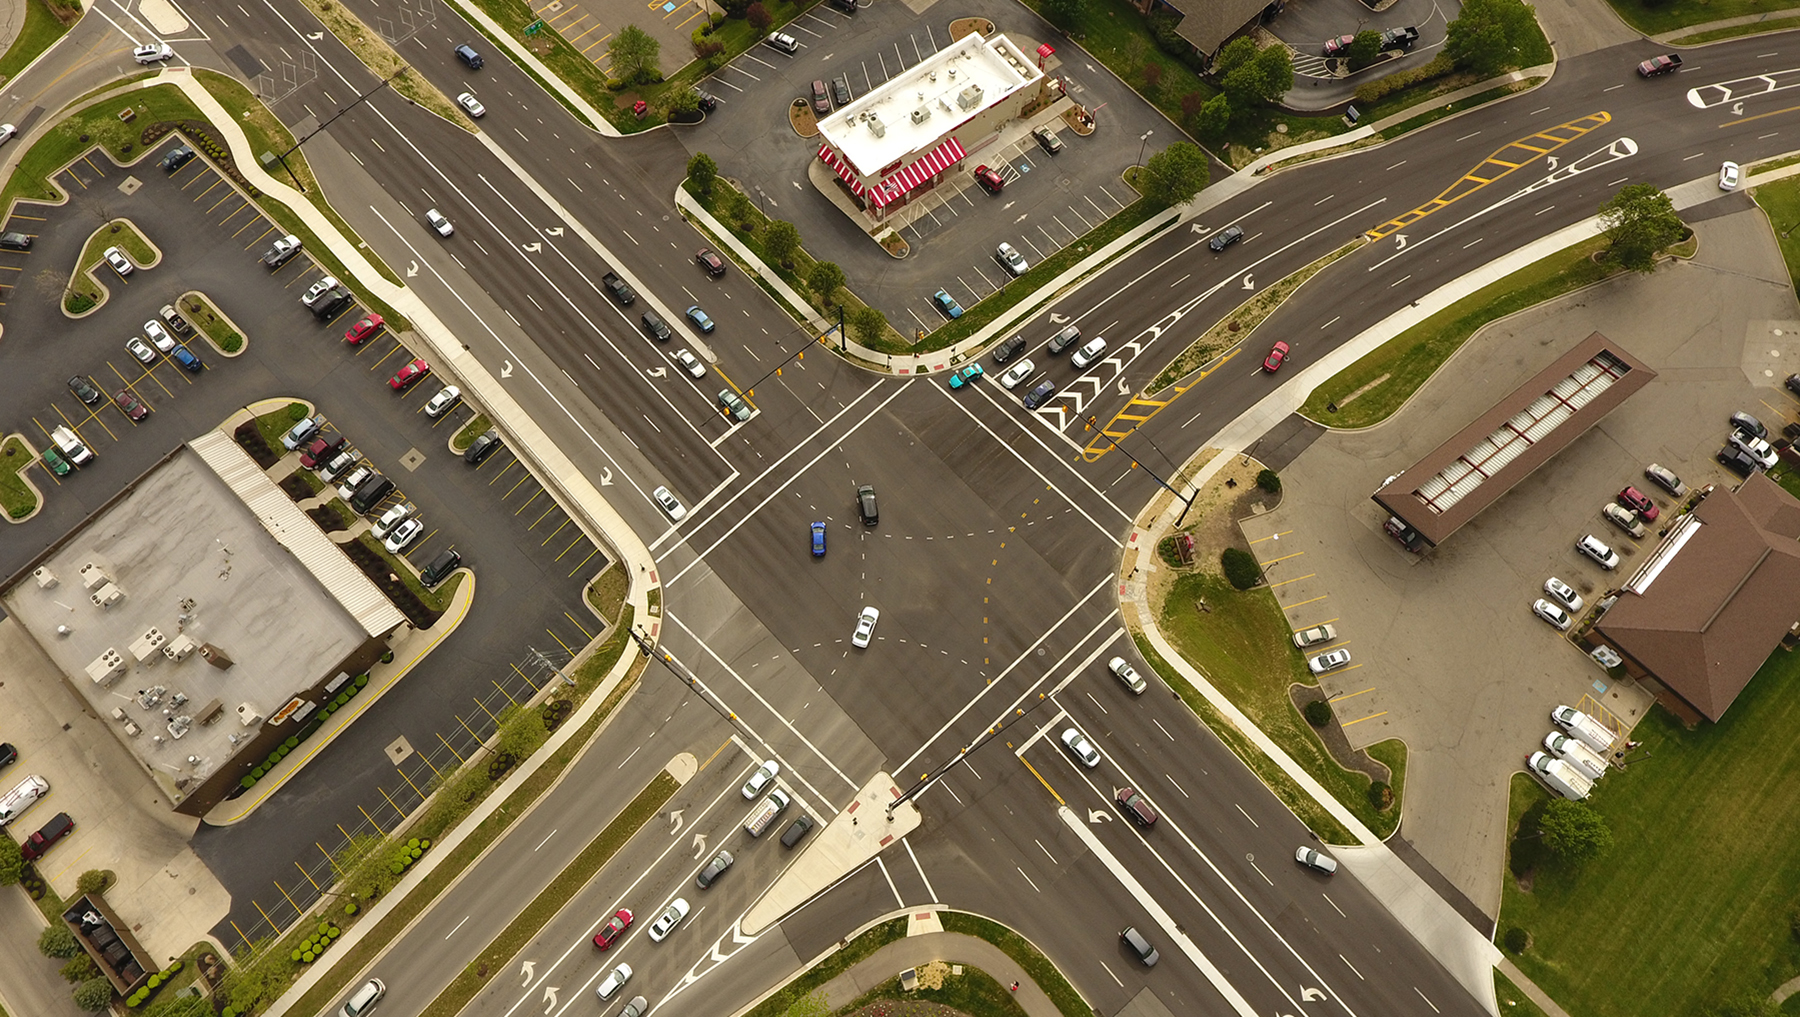 Things to consider when planning your next large-scale complete streets project